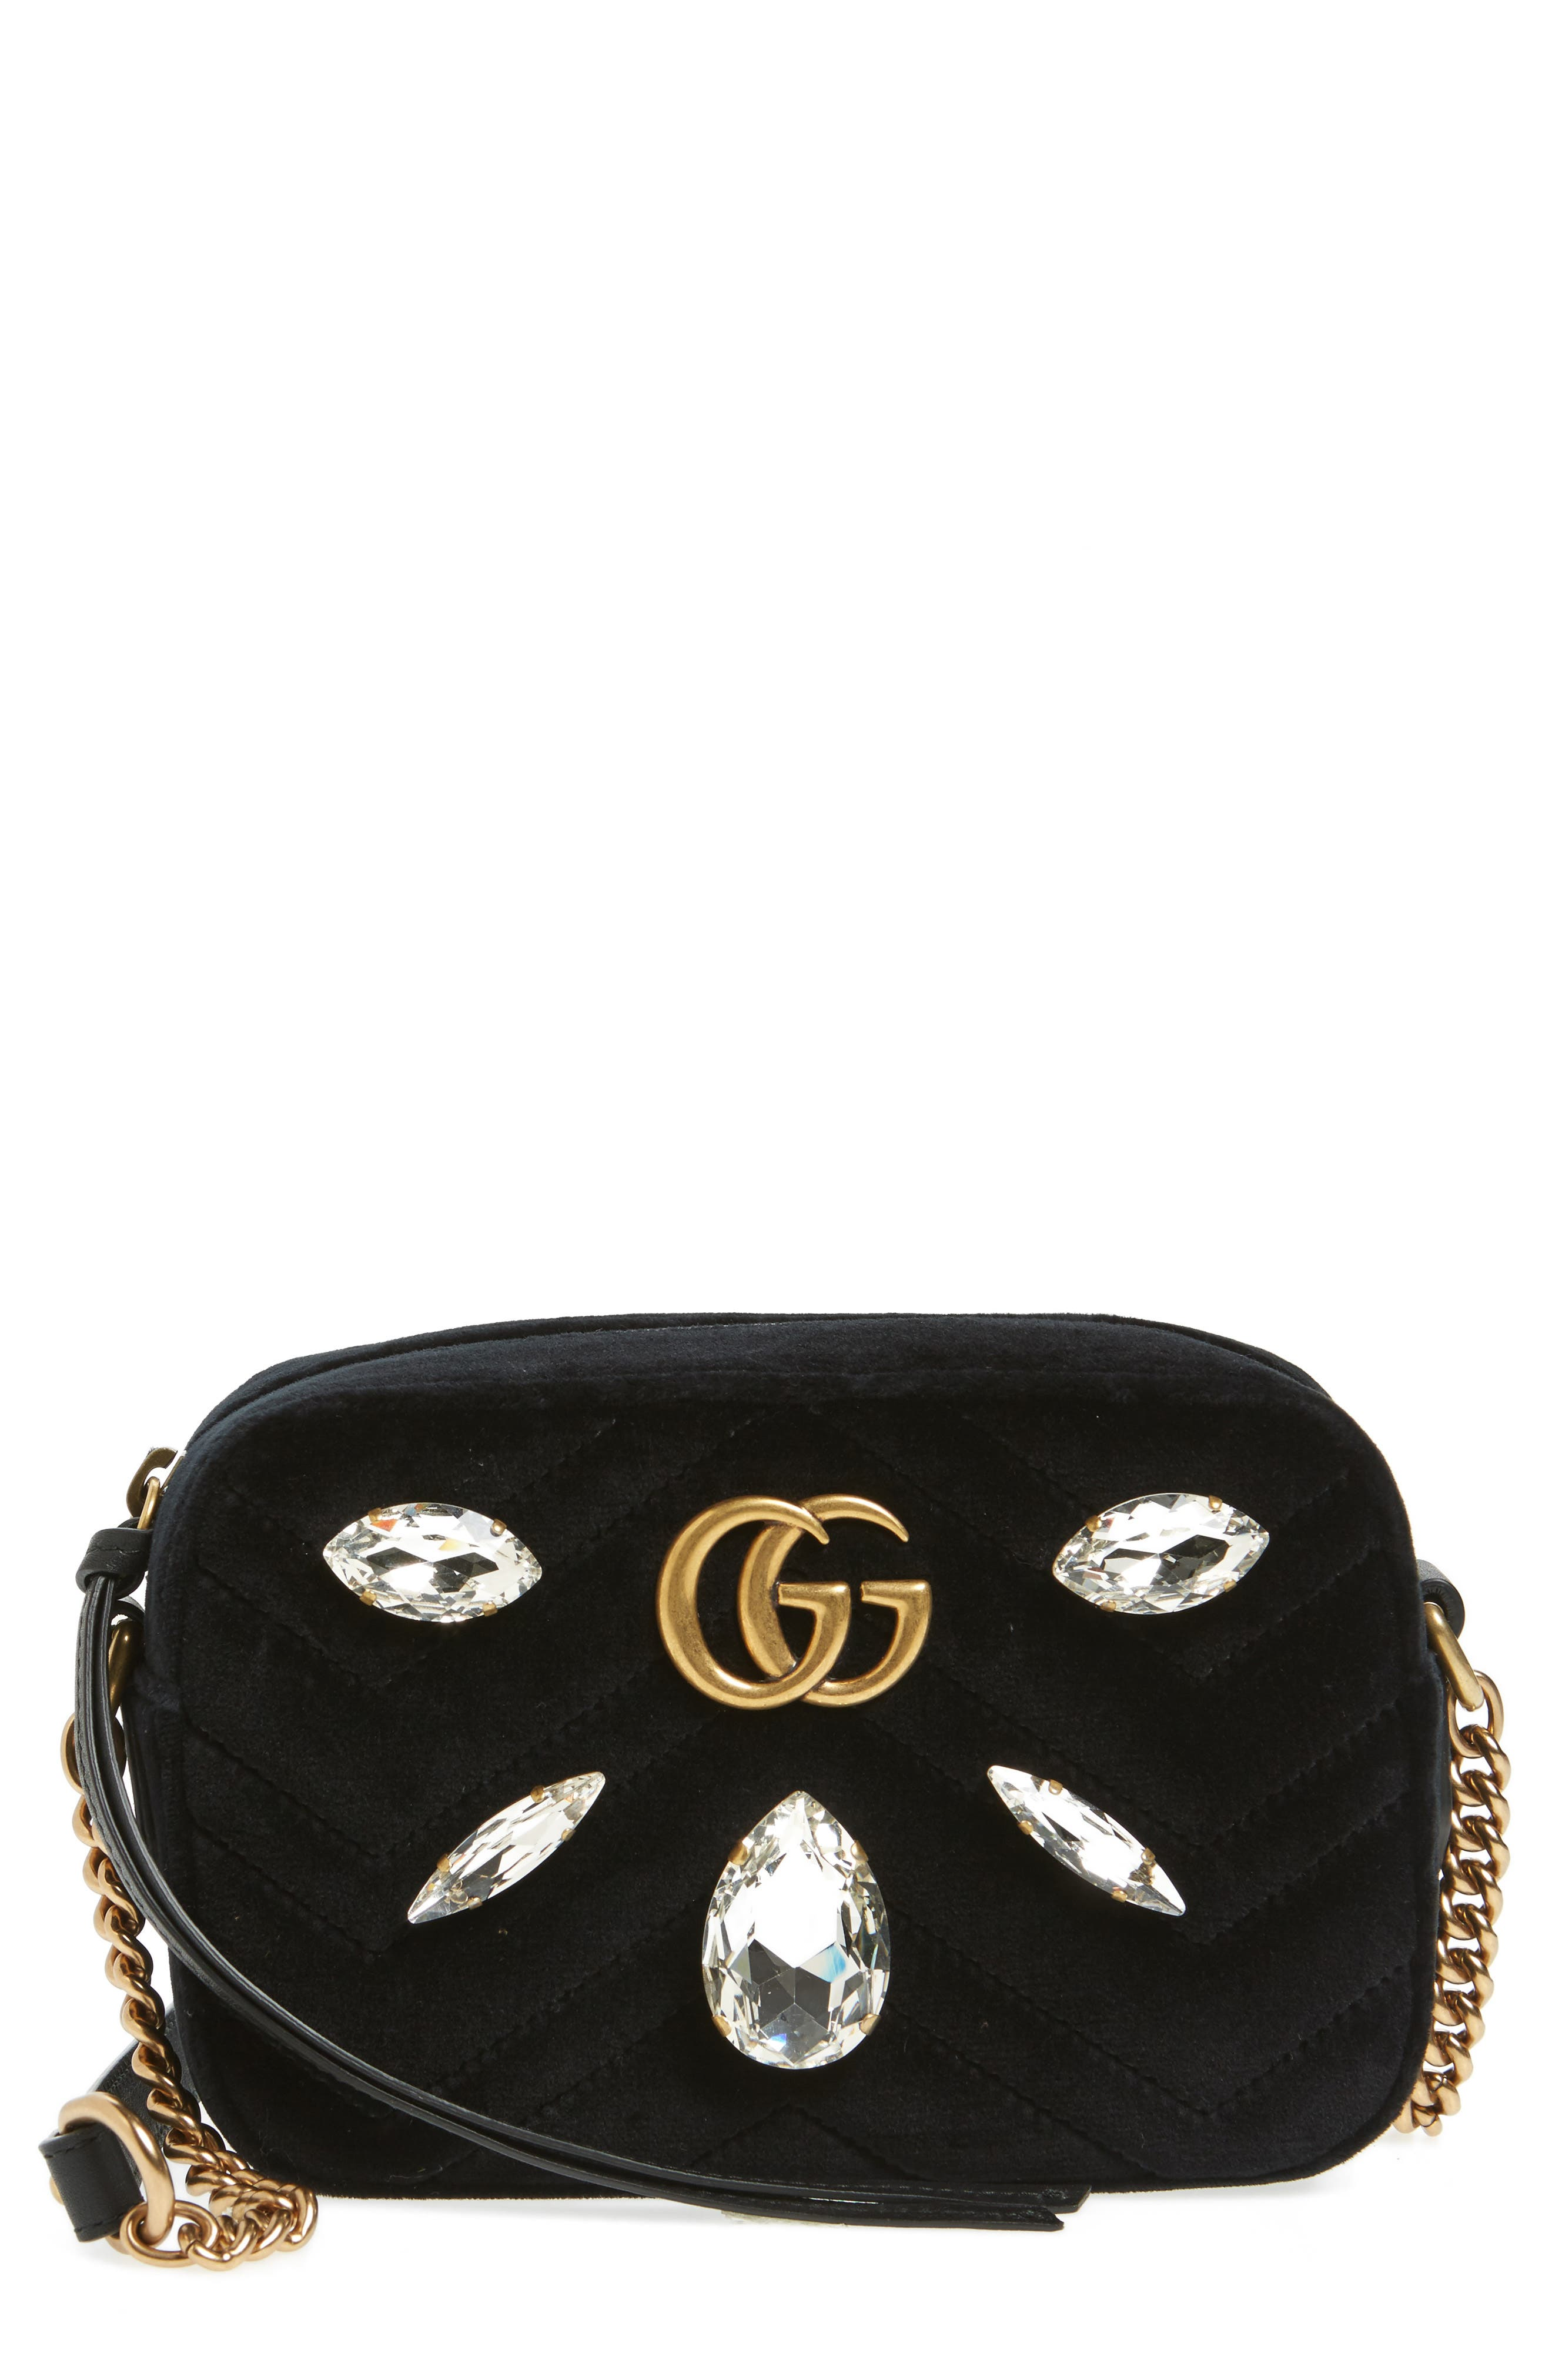 GG Marmont Crystal Matelassé Quilted Velvet Crossbody Bag,                         Main,                         color, Nero/ Crystal